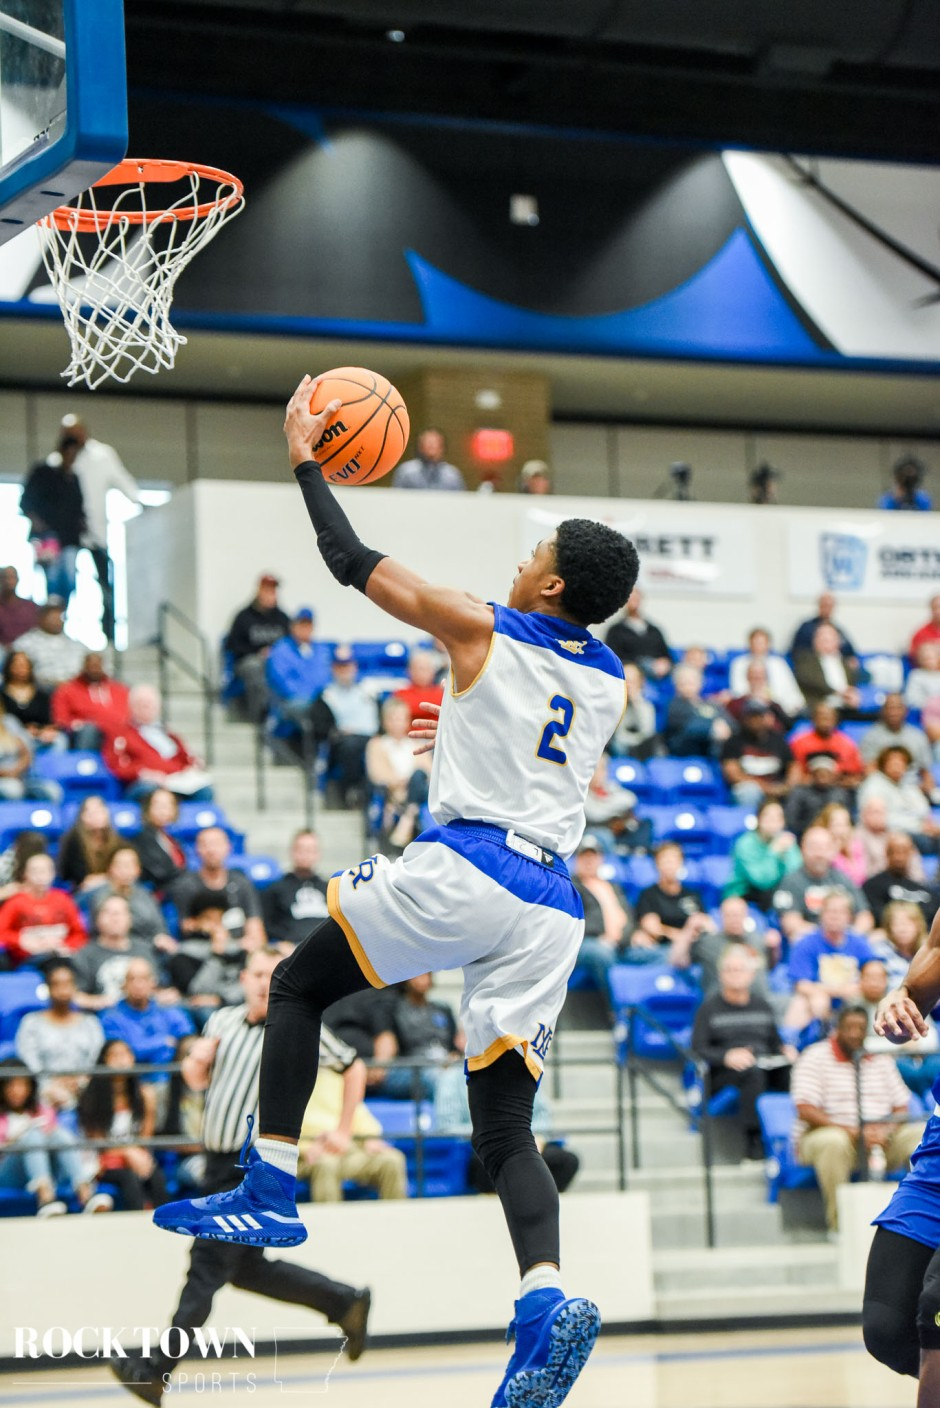 NLR_conway_bball_2020(i)-46